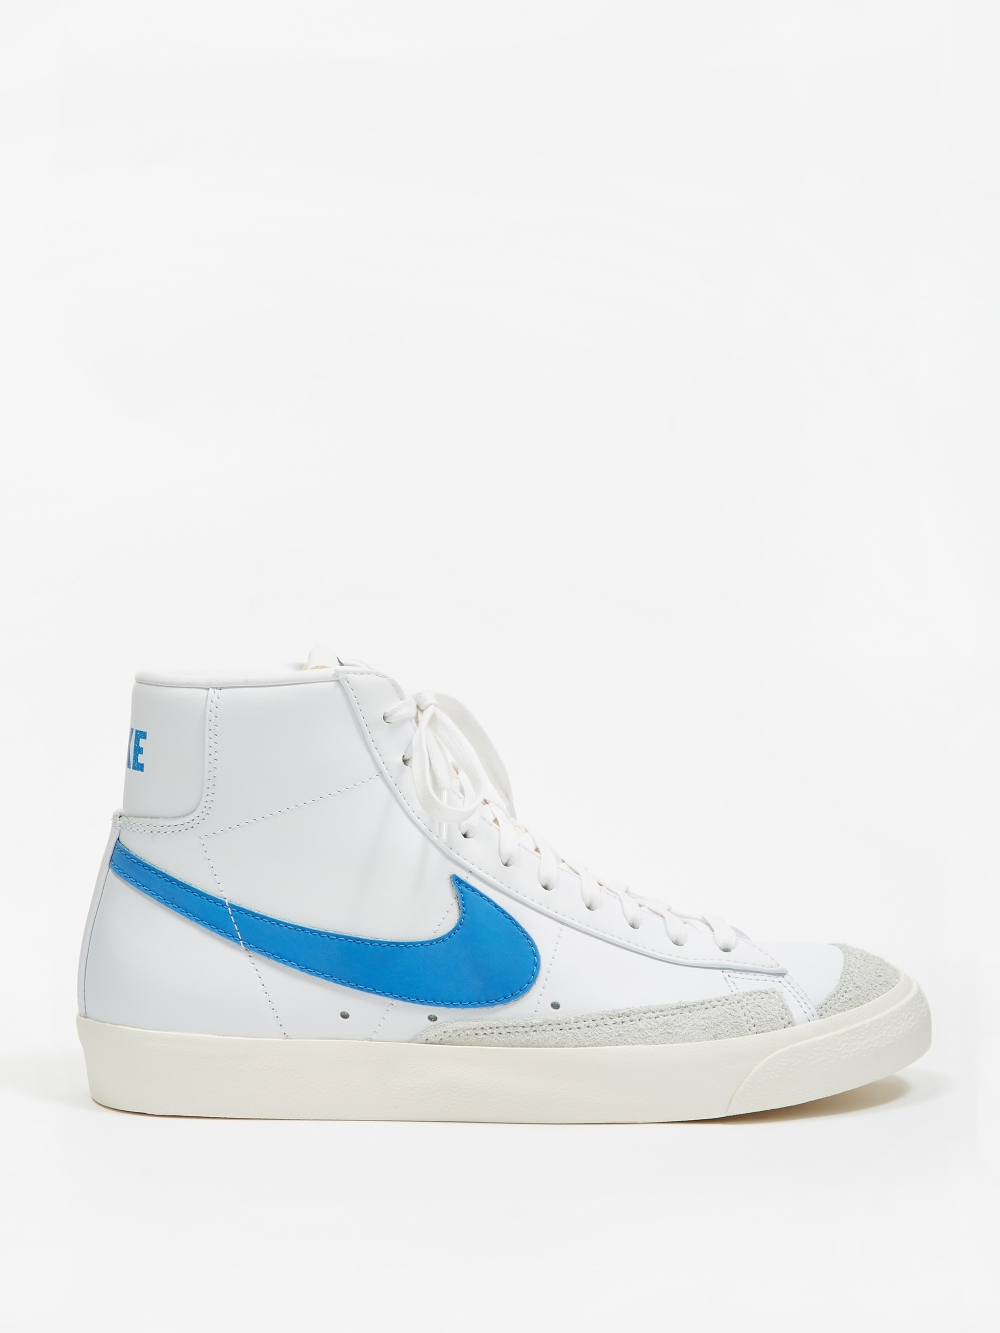 check out 5d41f 222ac ... where to buy nike blazer mid 77 vintage pacific blue sail white image 1  eedb2 10c8a